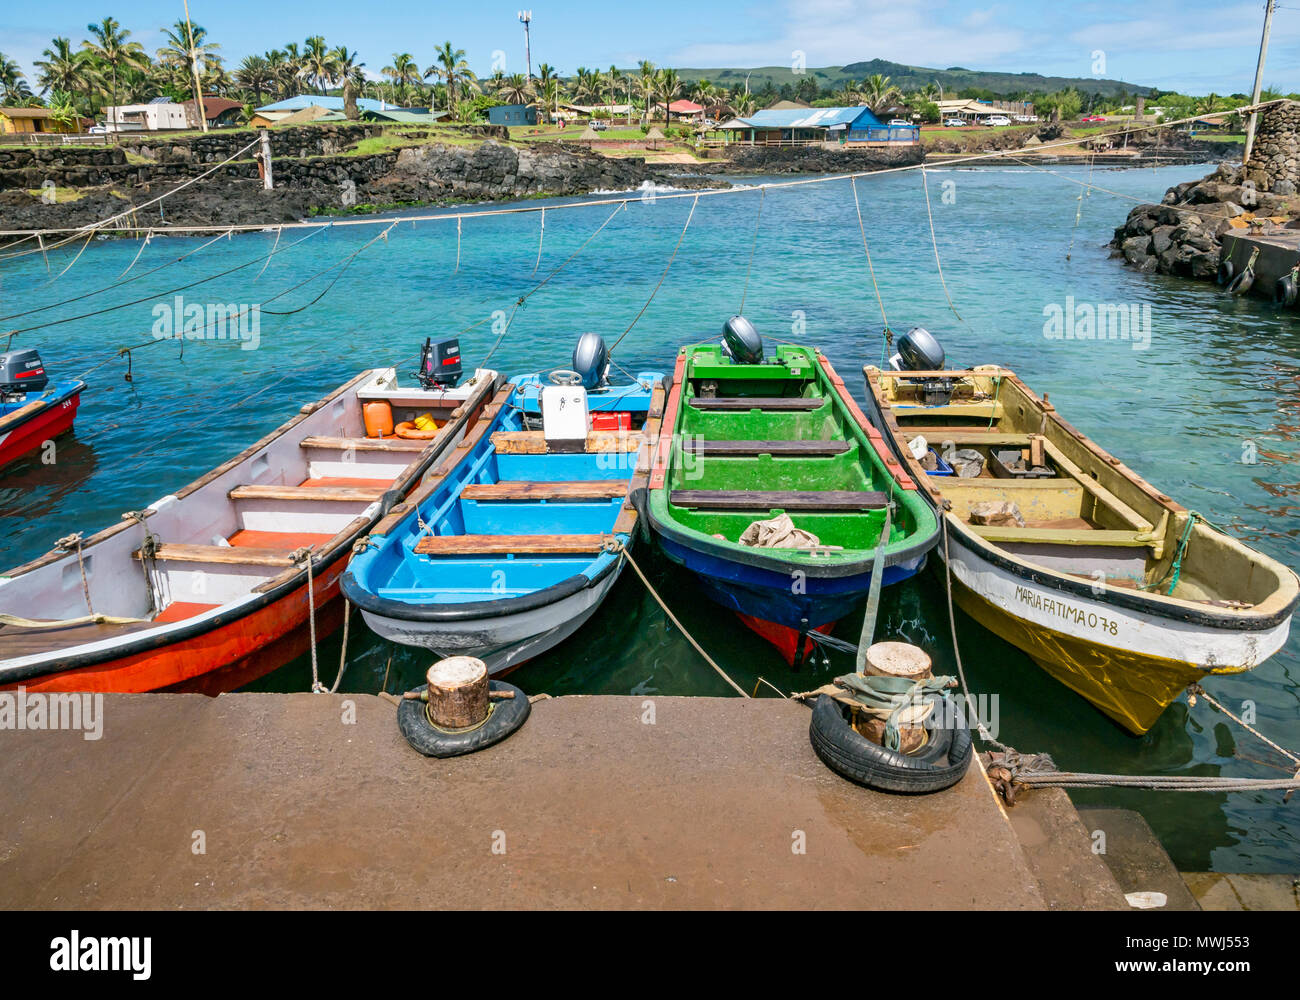 Colourful small open wooden boats tied up in harbour, Hanga Roa, Easter island, Rapa Nui, Chile - Stock Image